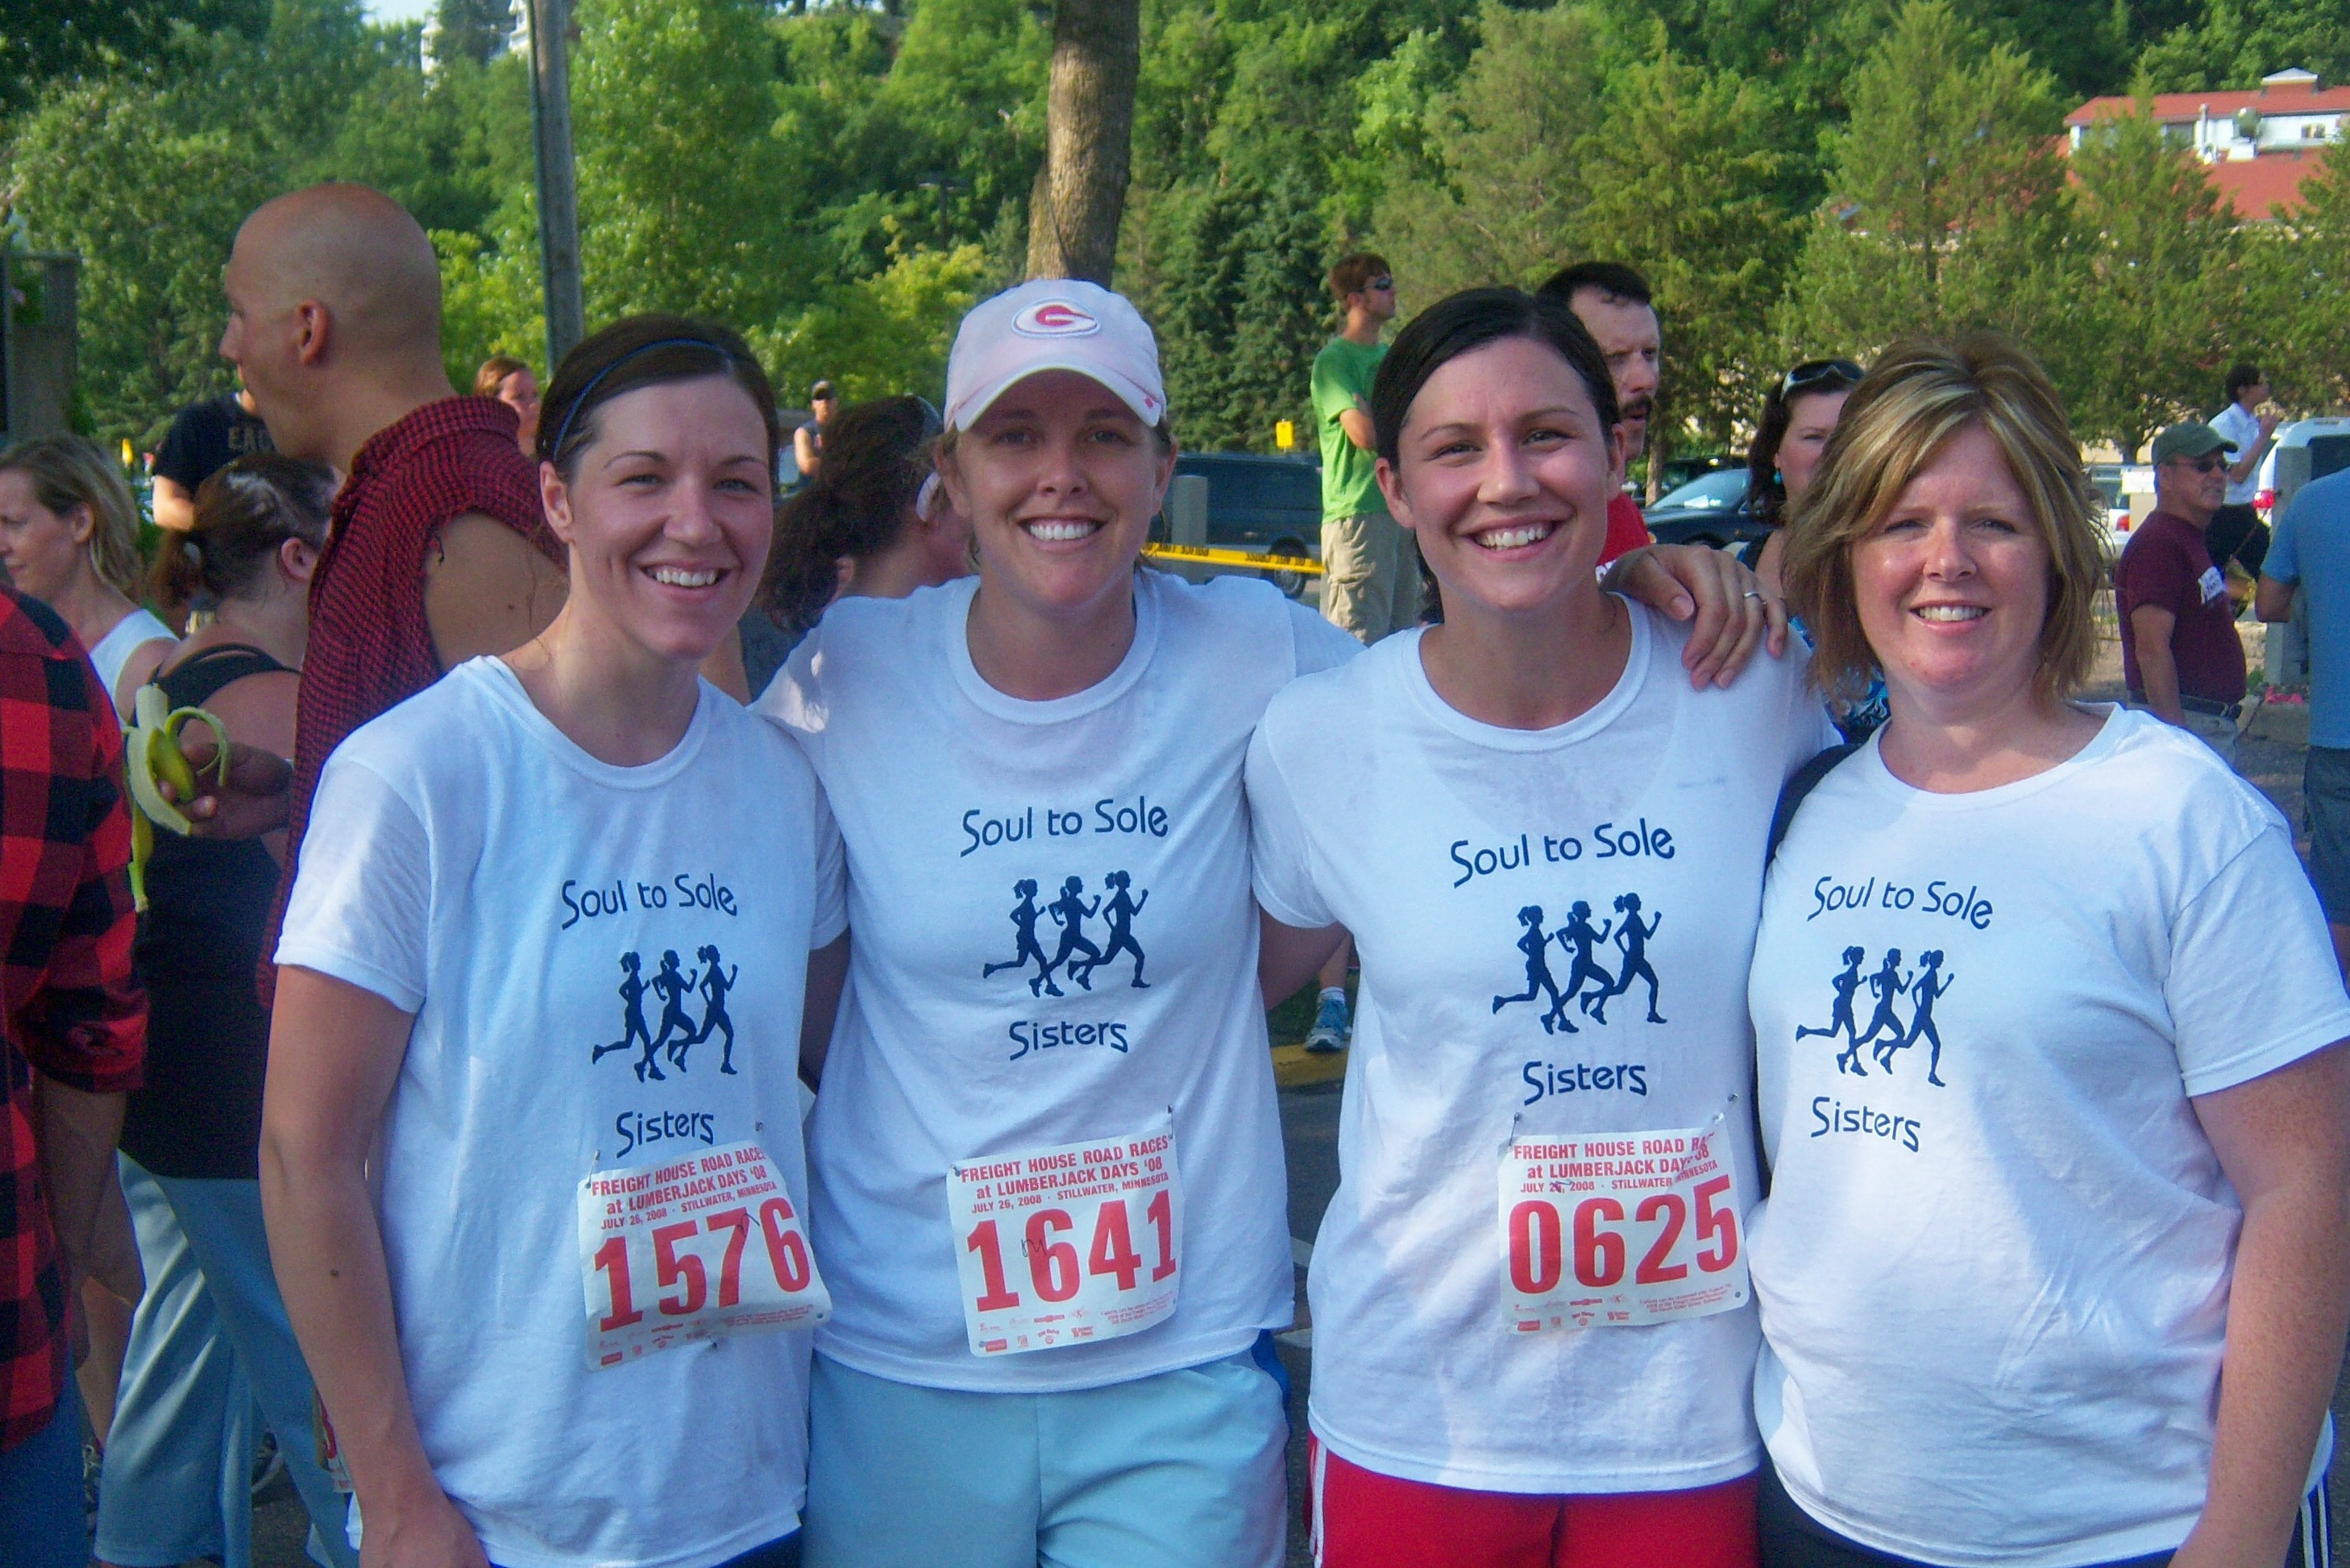 Custom T Shirts For Soul To Sole Sisters 5 K Run Shirt Design Ideas